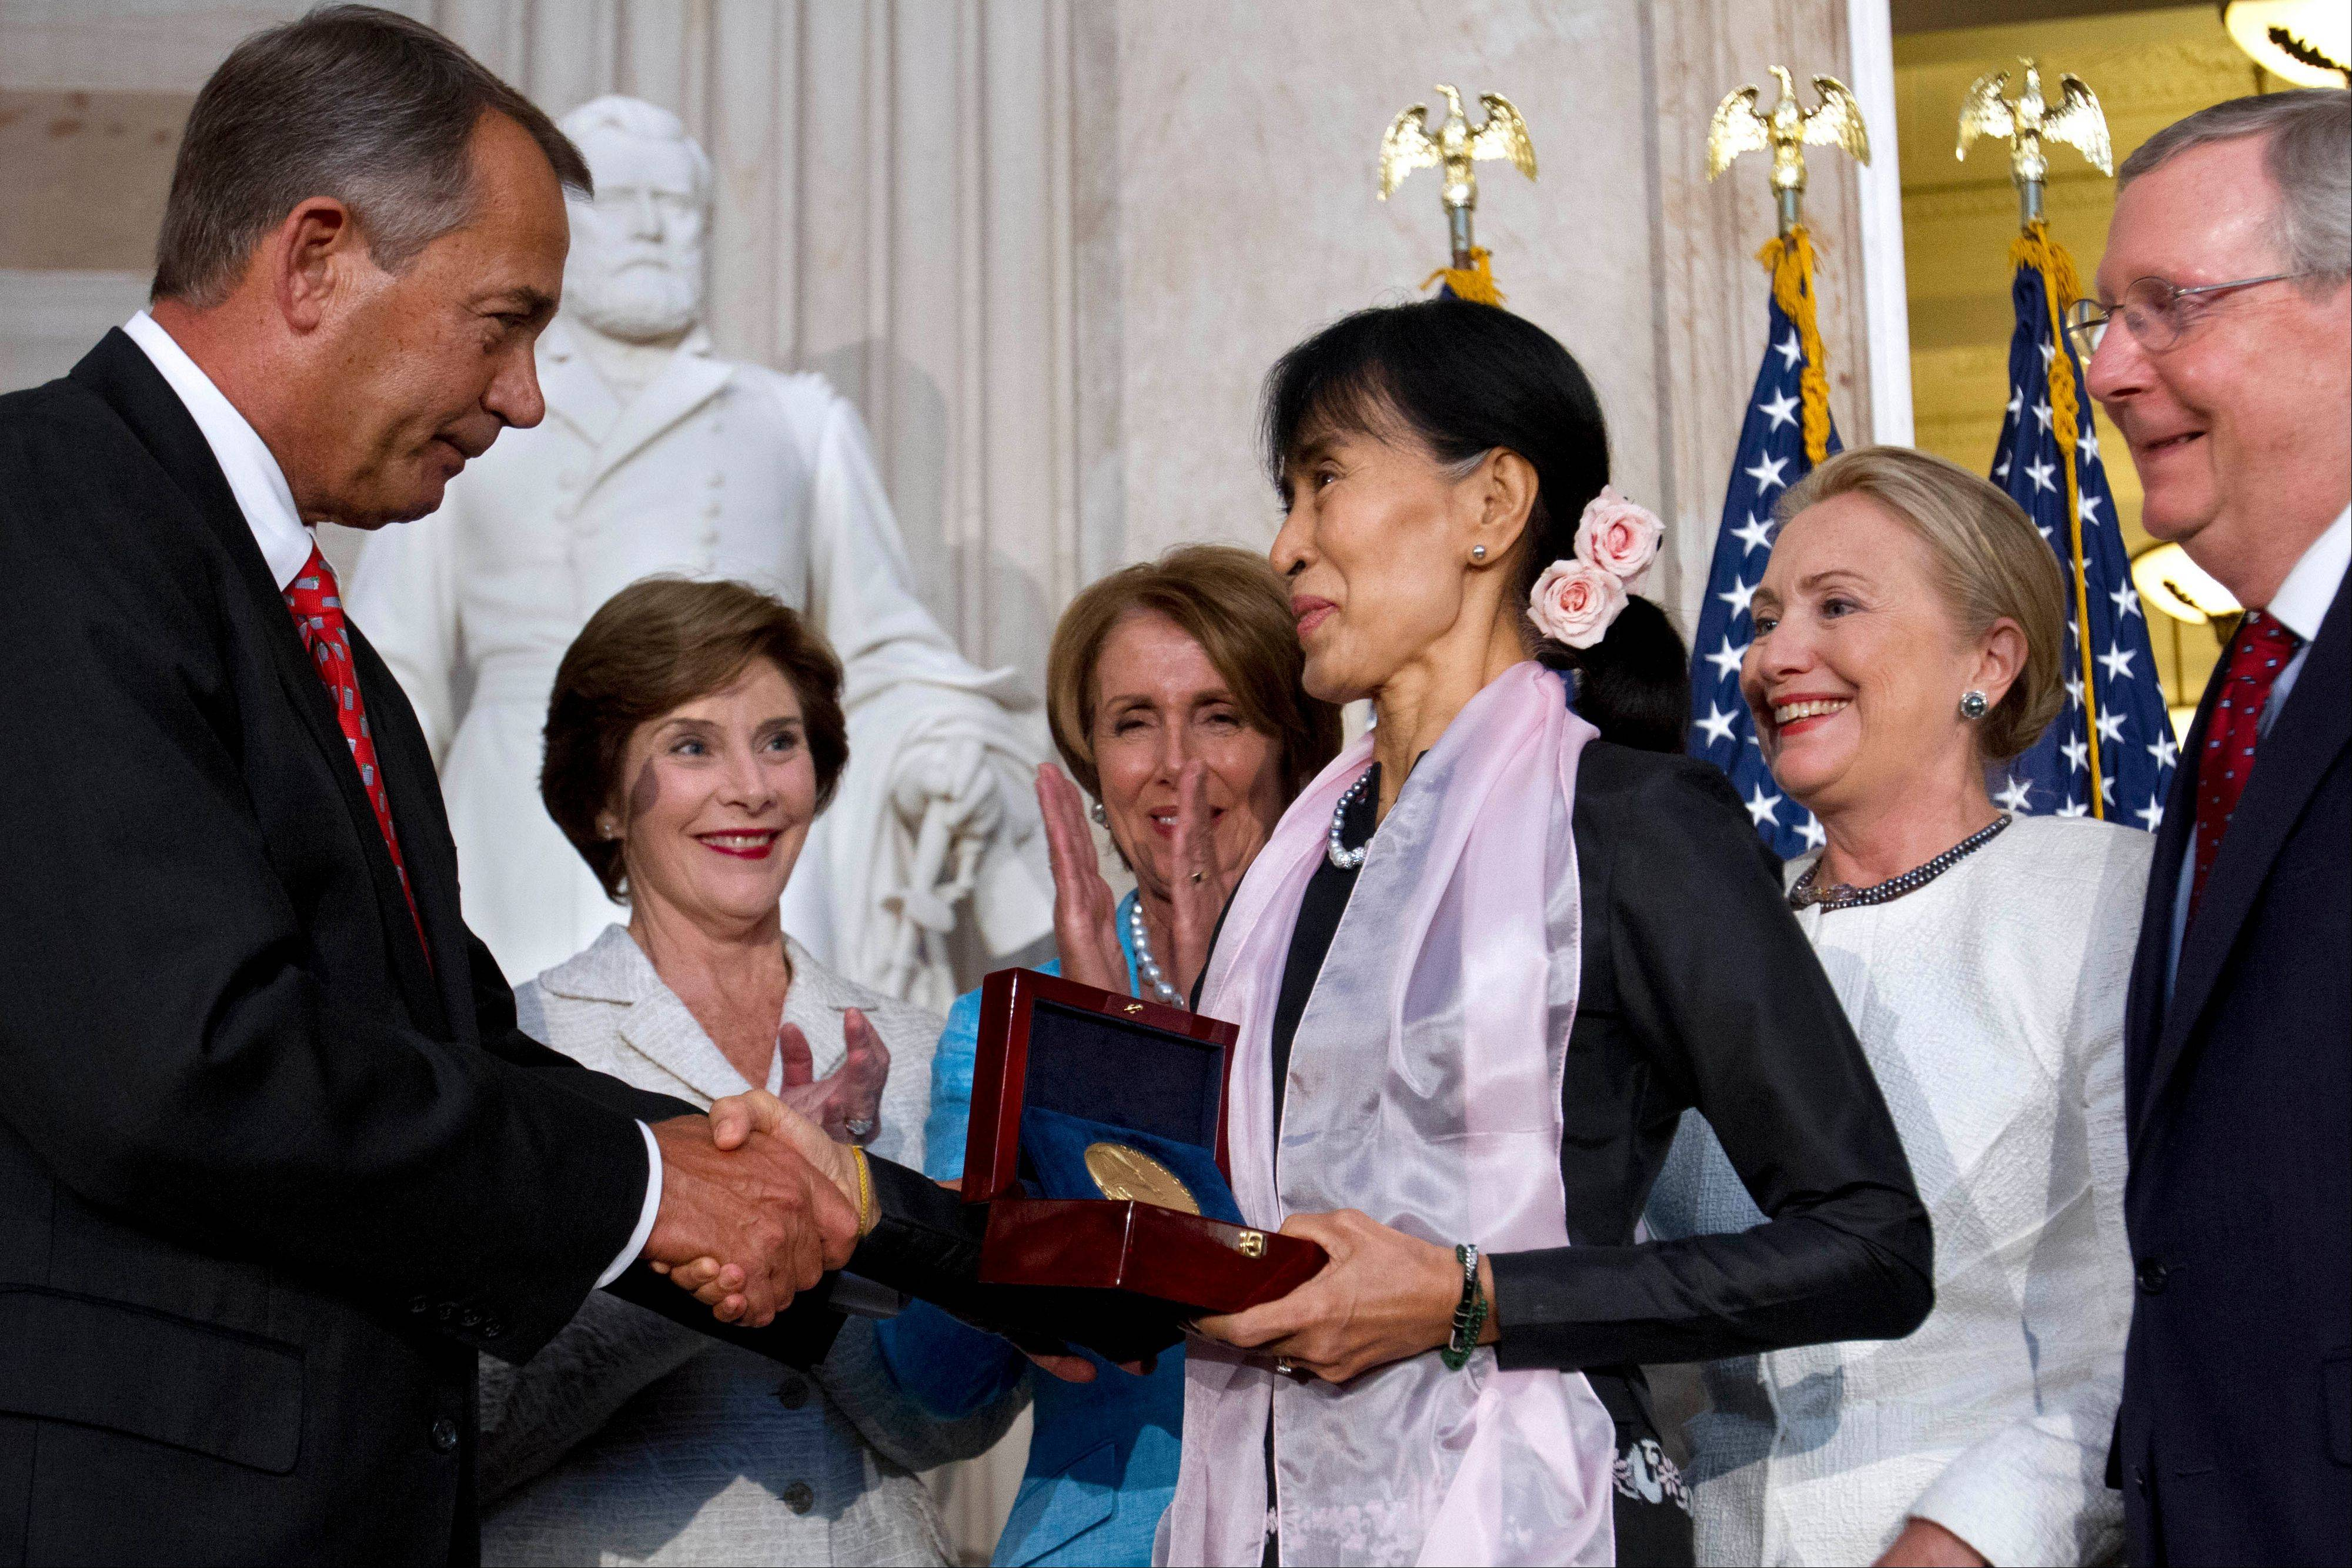 Myanmar democracy leader Aung San Suu Kyi, center, receives the Congressional Gold Medal from Speaker of the House John Boehner, at the U.S. Capitol Wednesday, as former first lady Laura Bush, back left, House Democratic Leader Nancy Pelosi, Secretary of State Hillary Rodham Clinton and Senate Republican Leader Mitch McConnell watch.